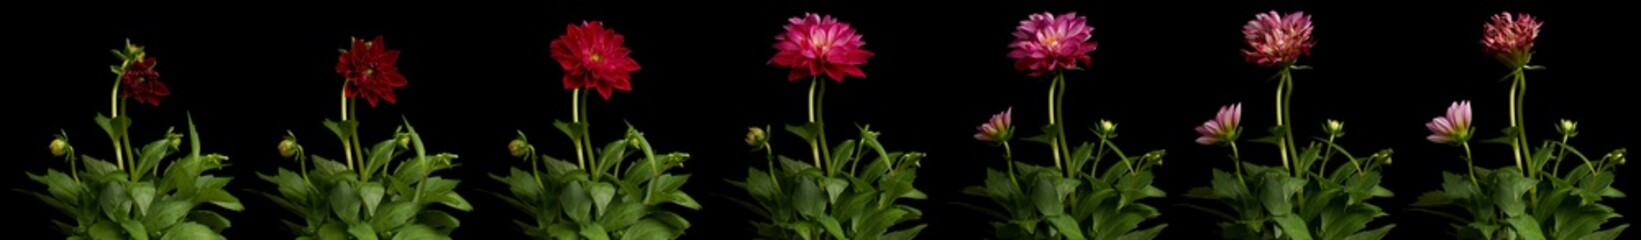 Time lapse series of pink Dahlia flowers blooming. Studio shot over black.